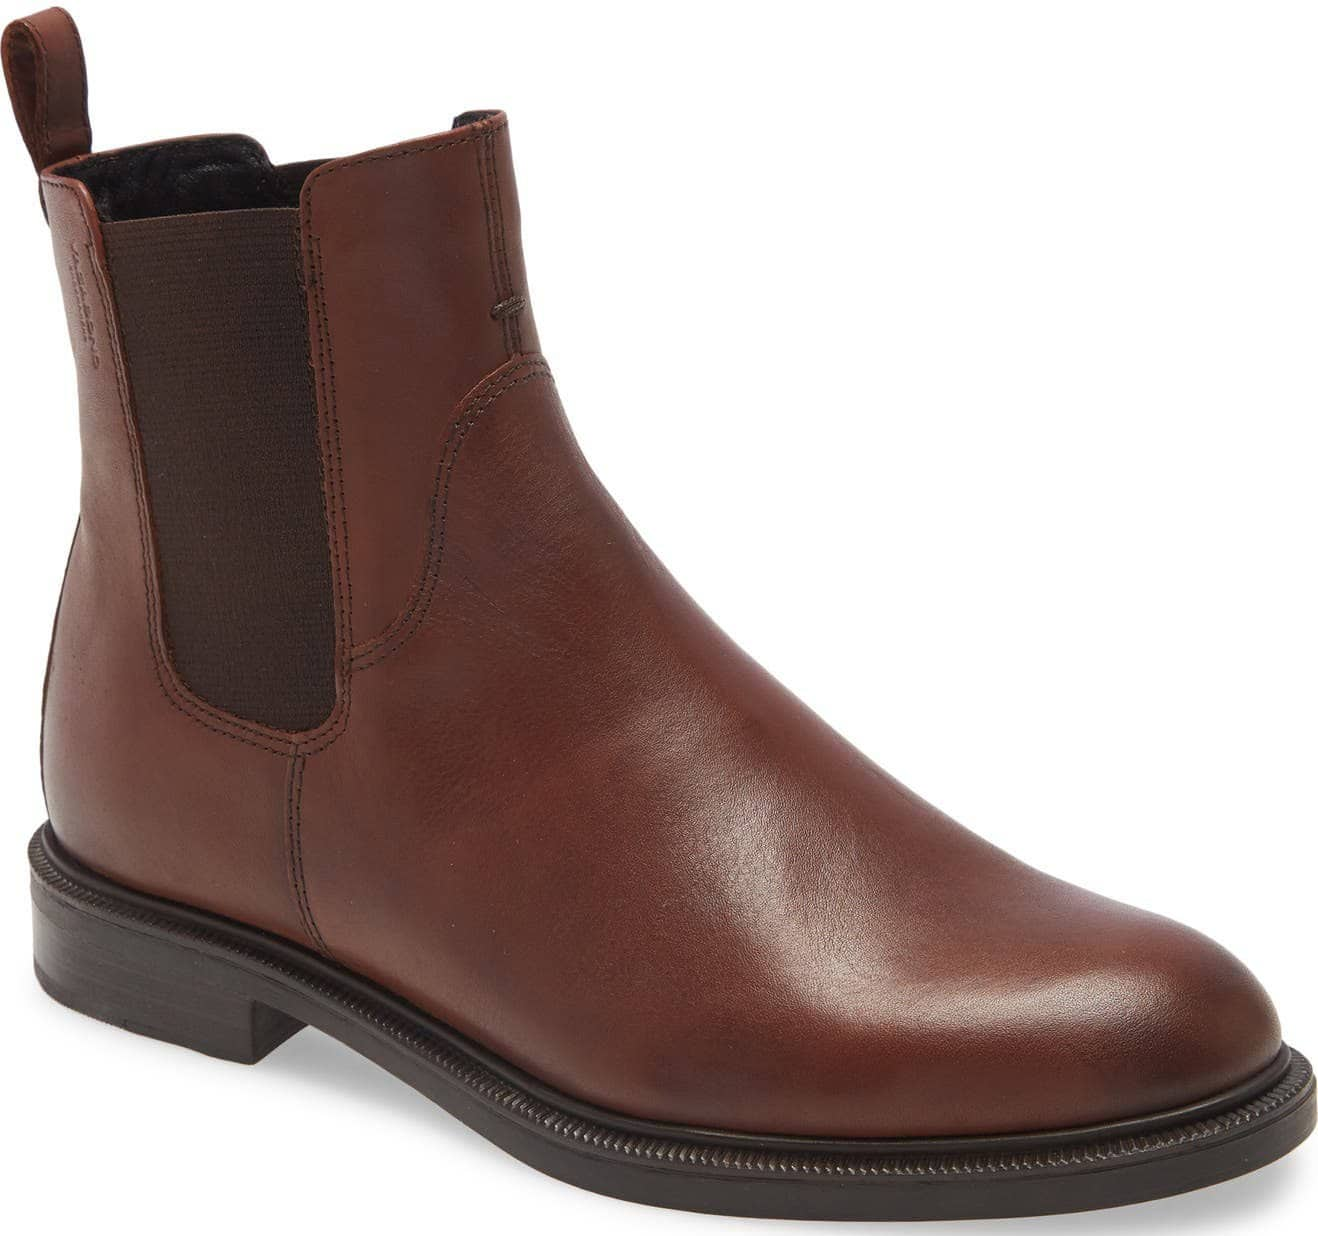 Enjoy day to evening comfort with the country-style Vagabond Shoemakers Chelsea boot